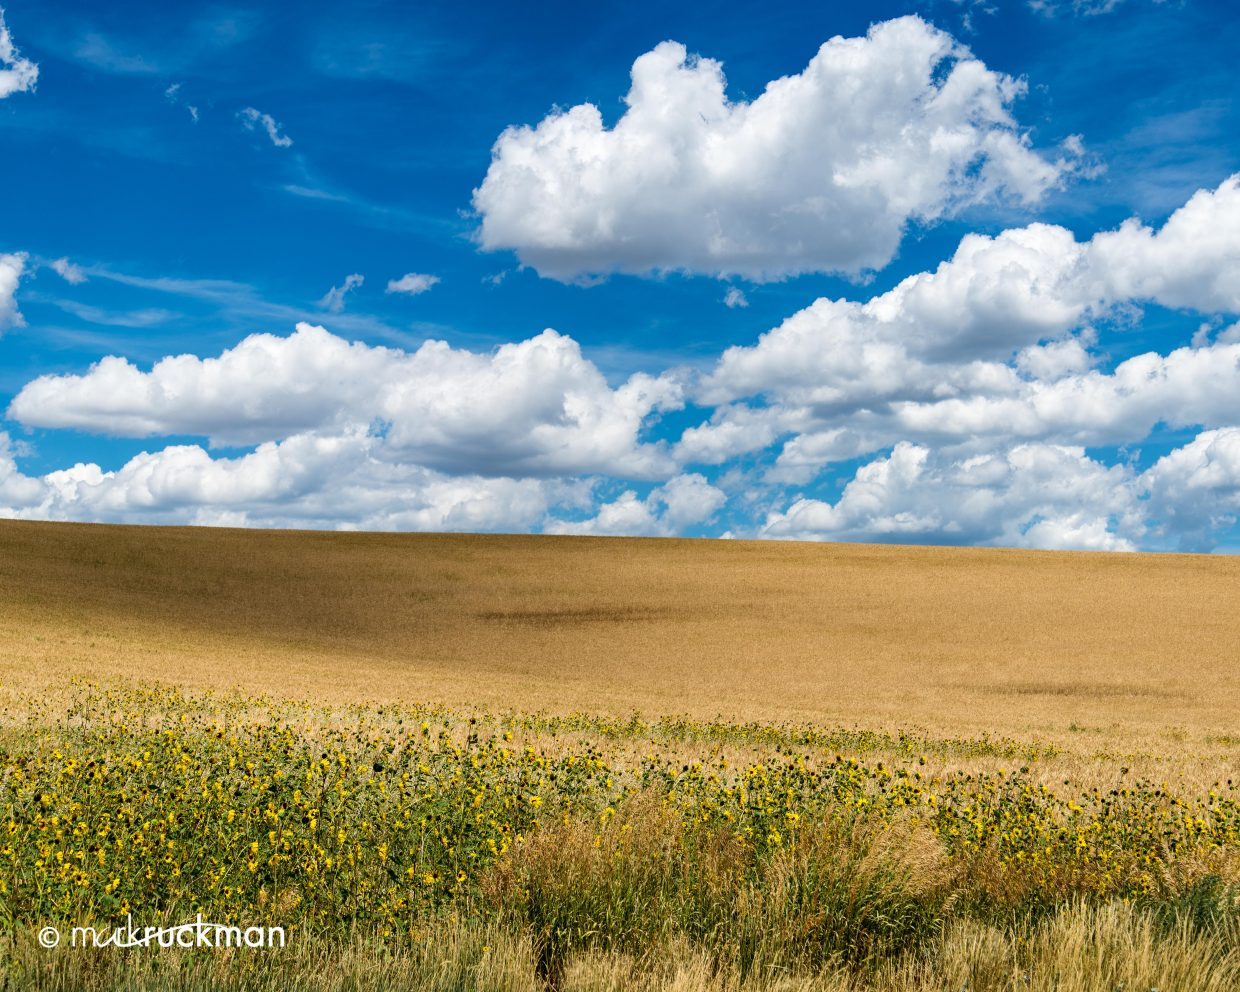 A wonderful sky over a wheat field near Hayden. Submitted by: Mark Ruckman